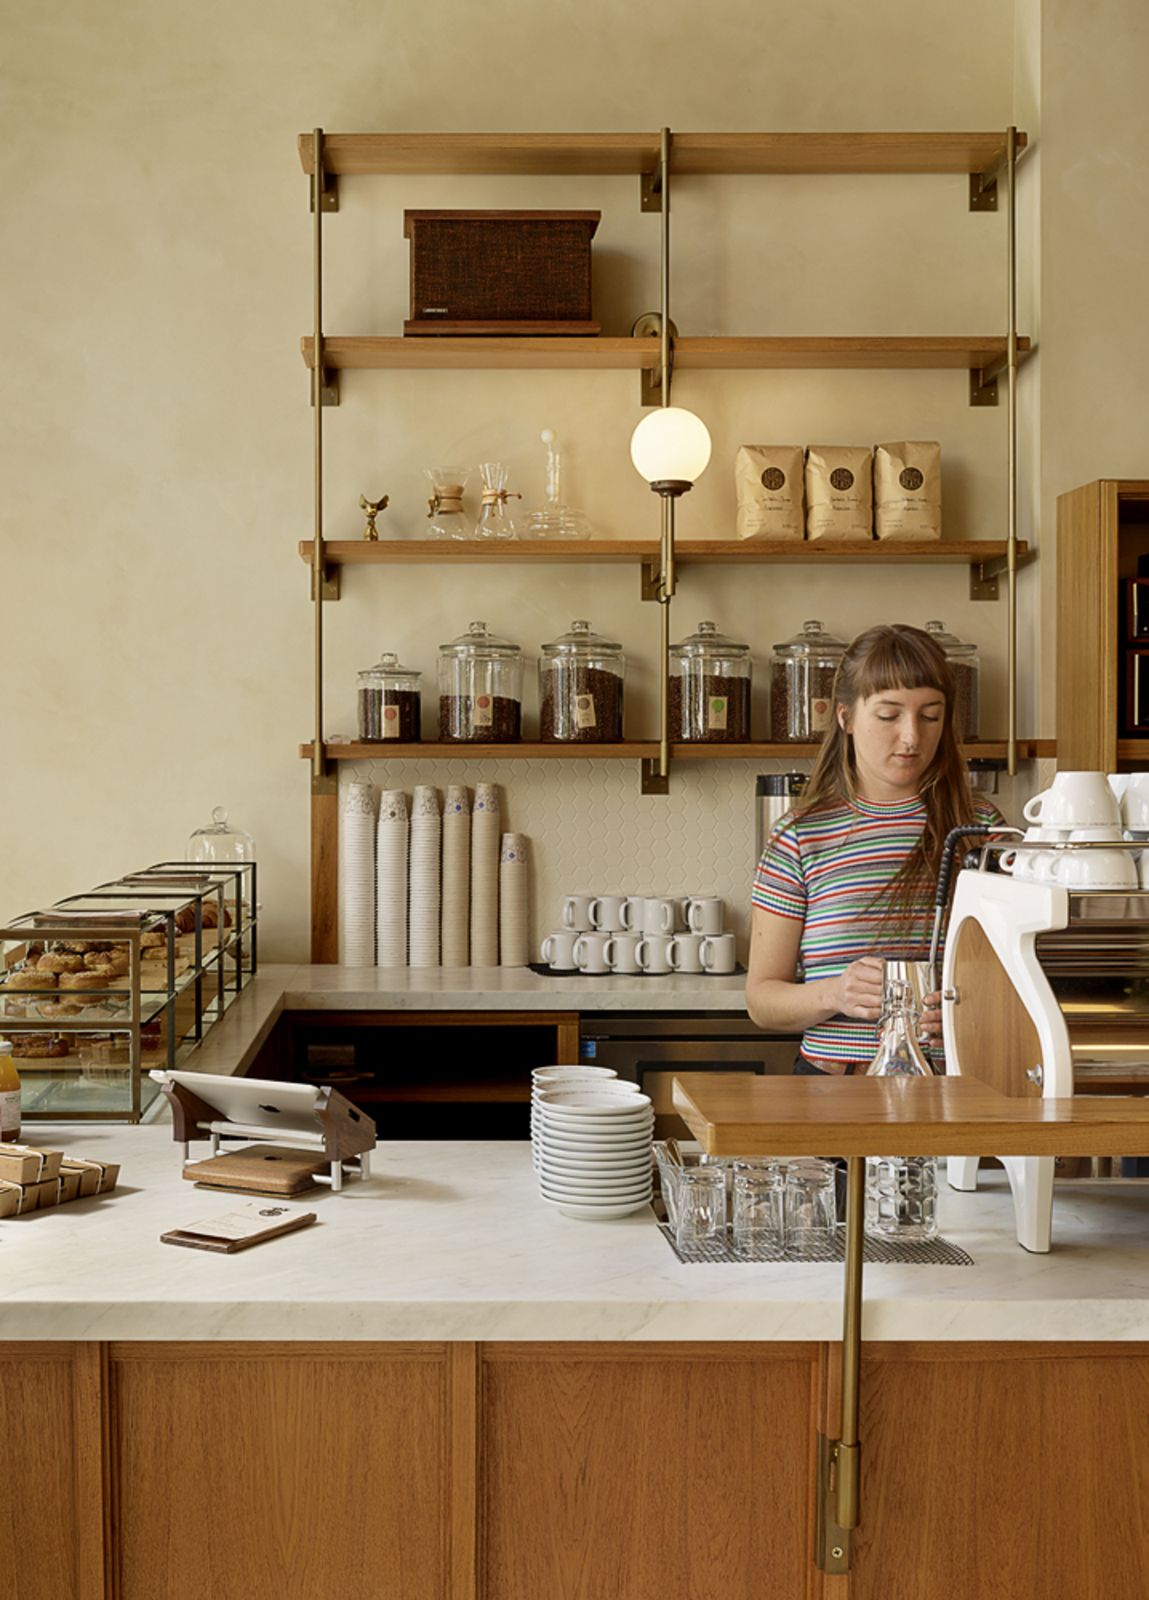 Coffee Break: Sightglass 20th Street, San Francisco by Diana Budds